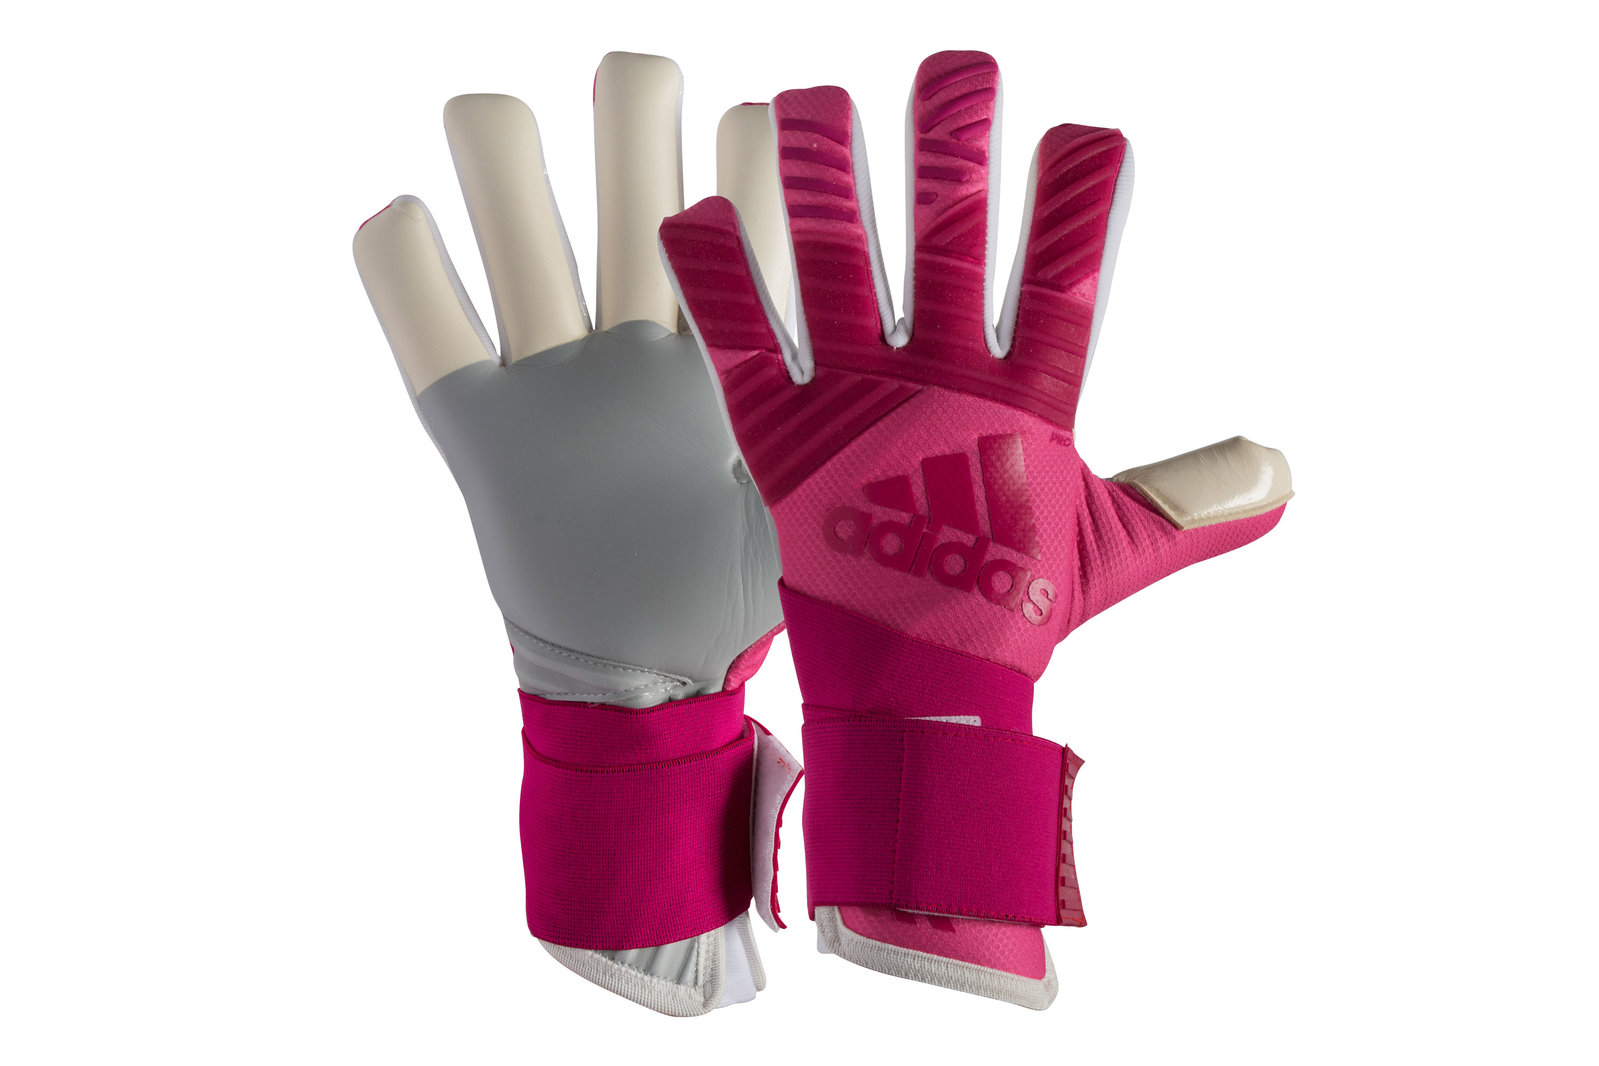 Image of Ace Next Generation Goalkeepers Gloves